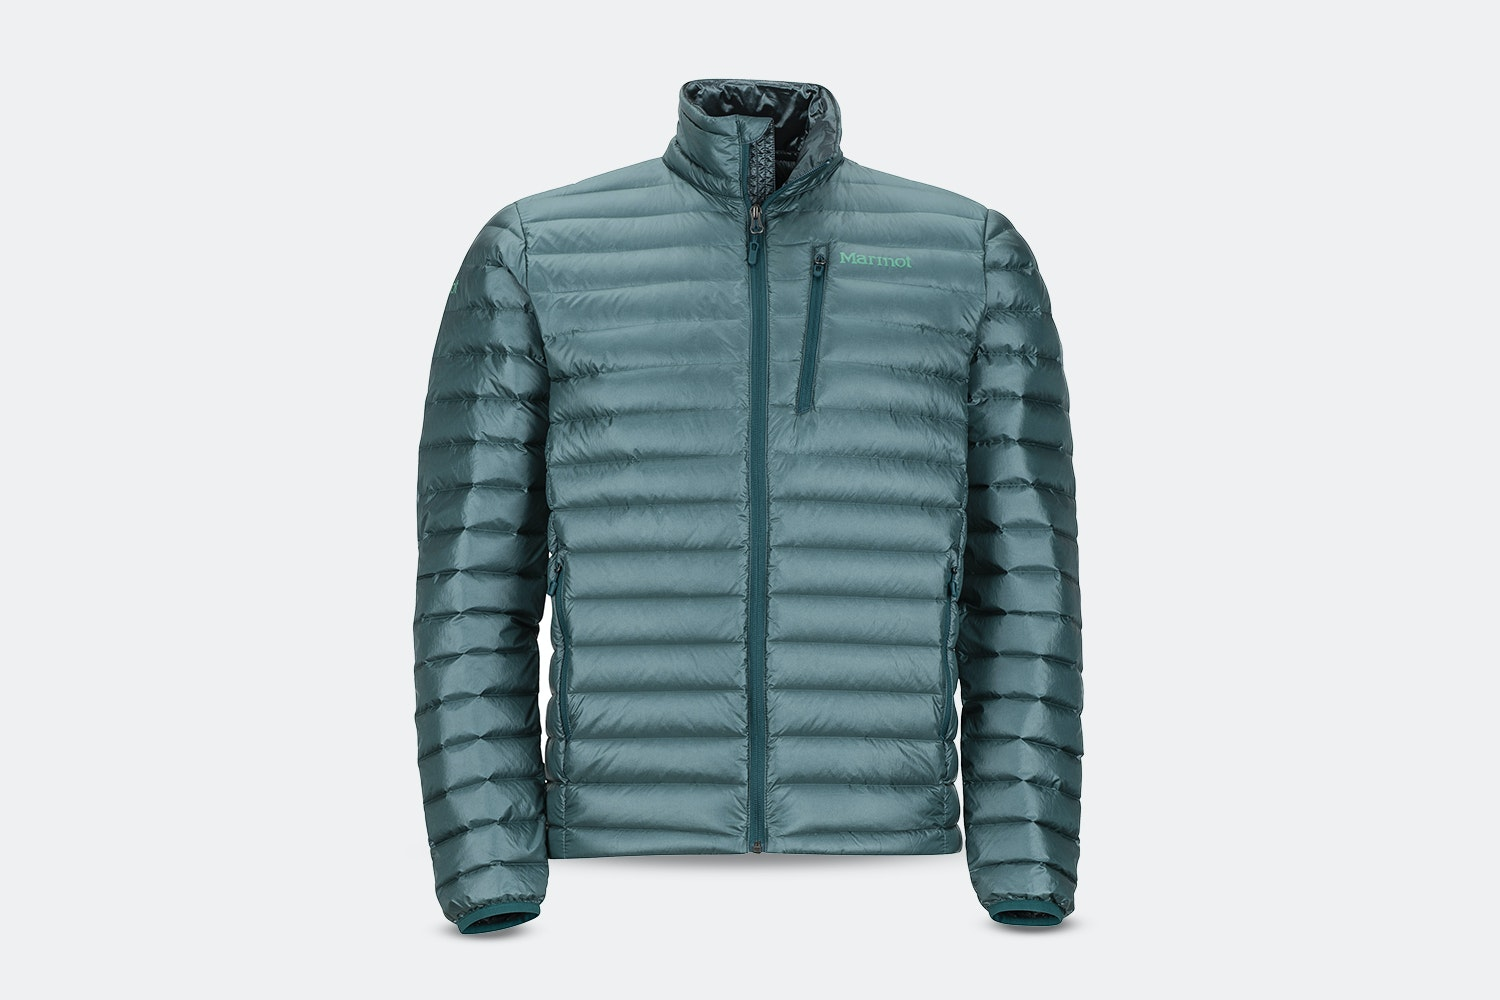 Men's – Deep Teal